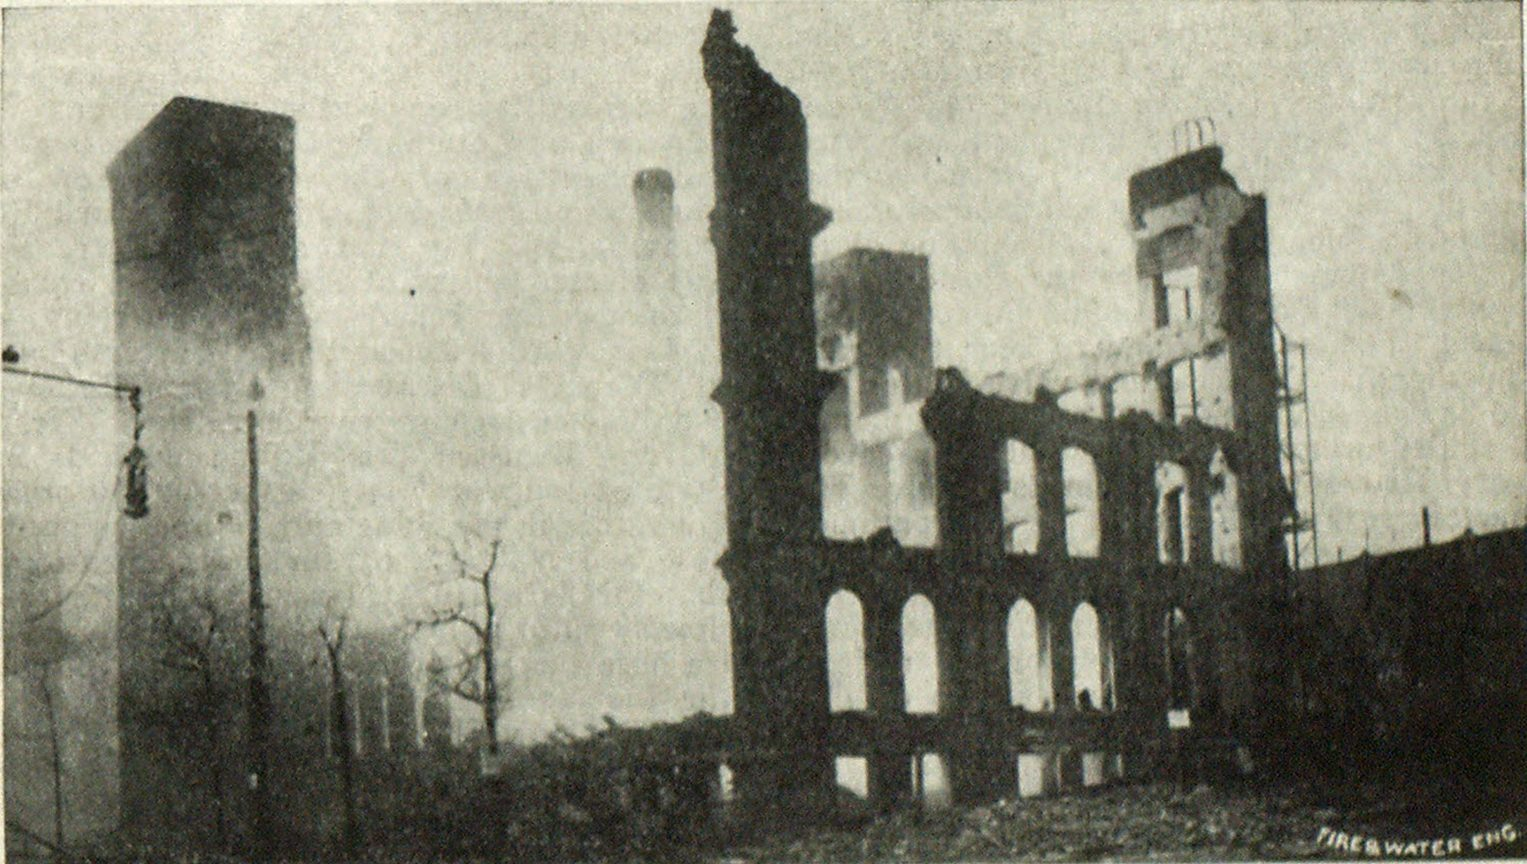 General View of Ruins of Cocoa Factory at Jersey City, N. J., Showing Parts of Walls Standing.